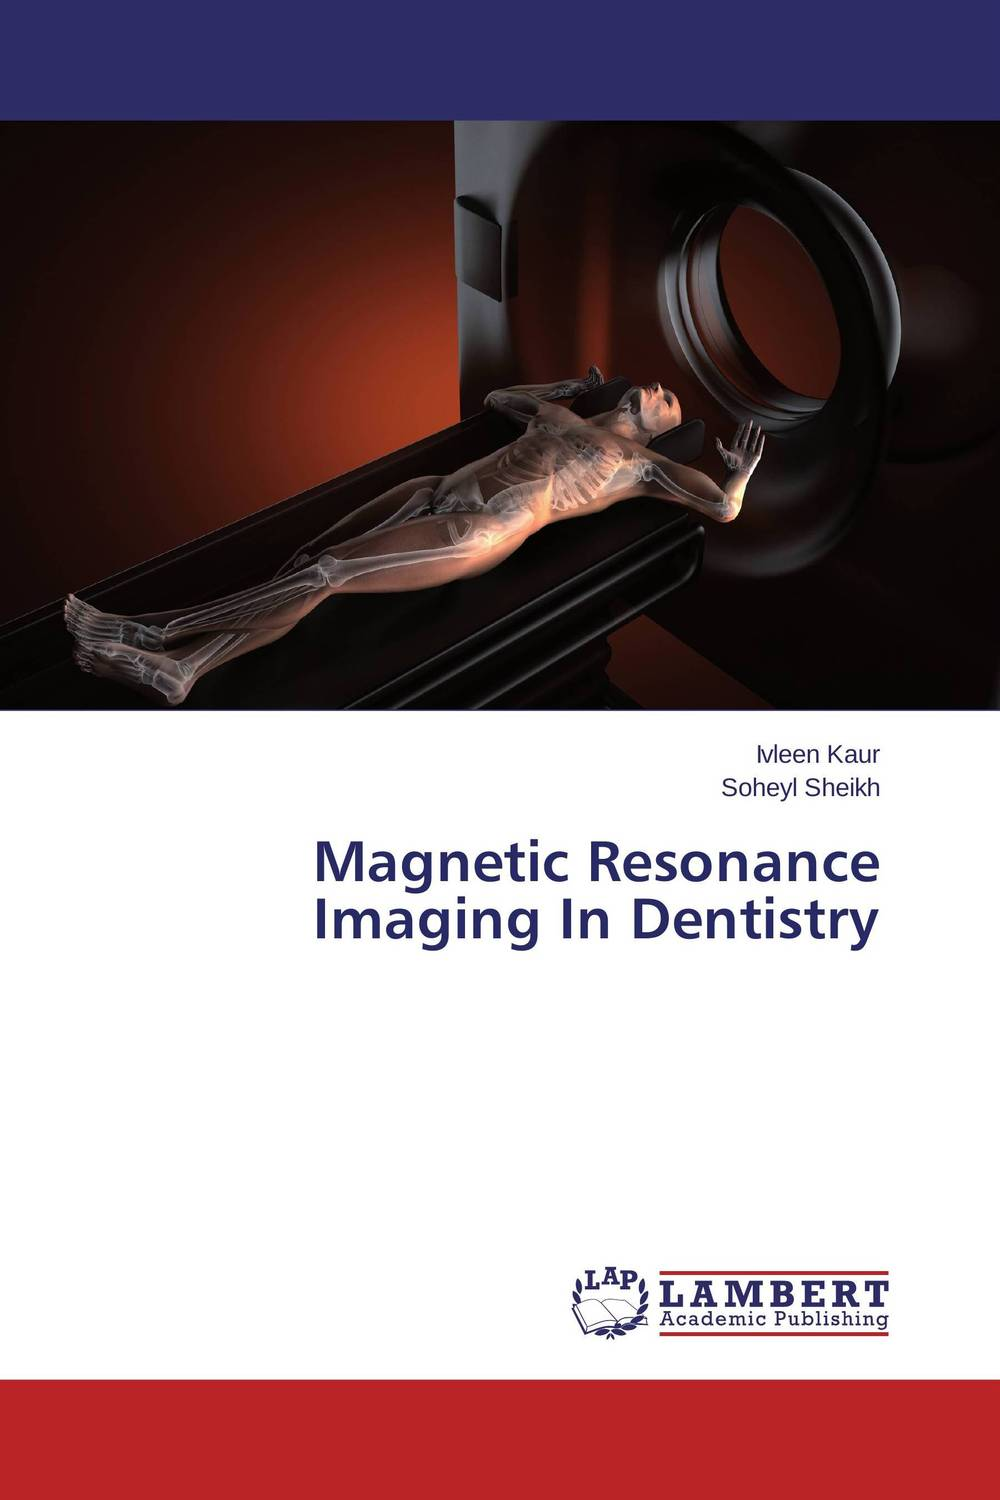 Magnetic Resonance Imaging In Dentistry alon dadon imaging spectroscopy from space applied for geological mapping